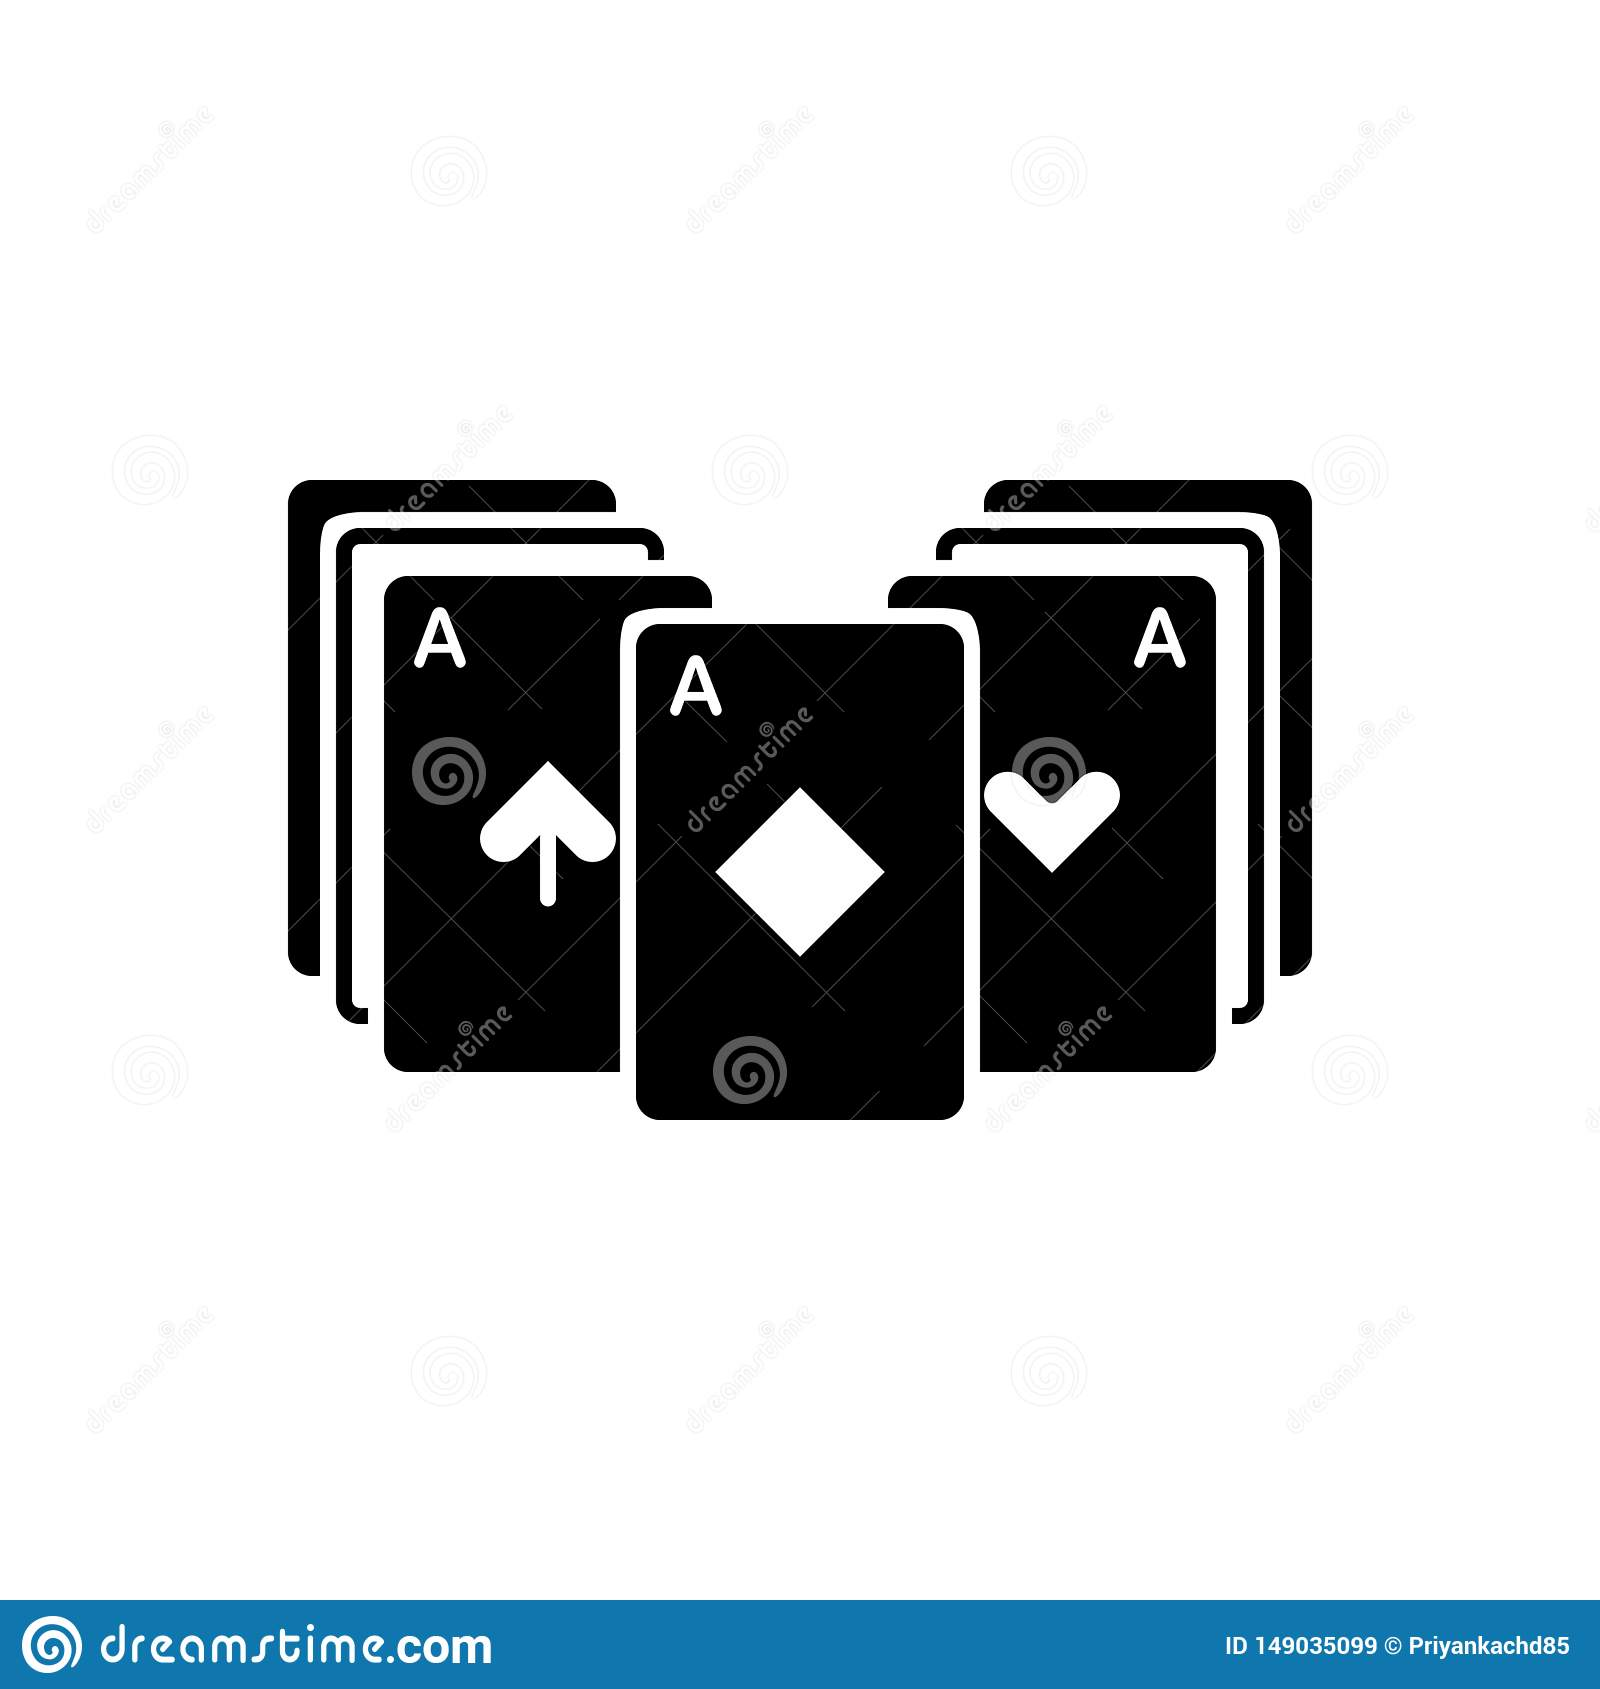 Black solid icon for Blackjack, cards and roulette